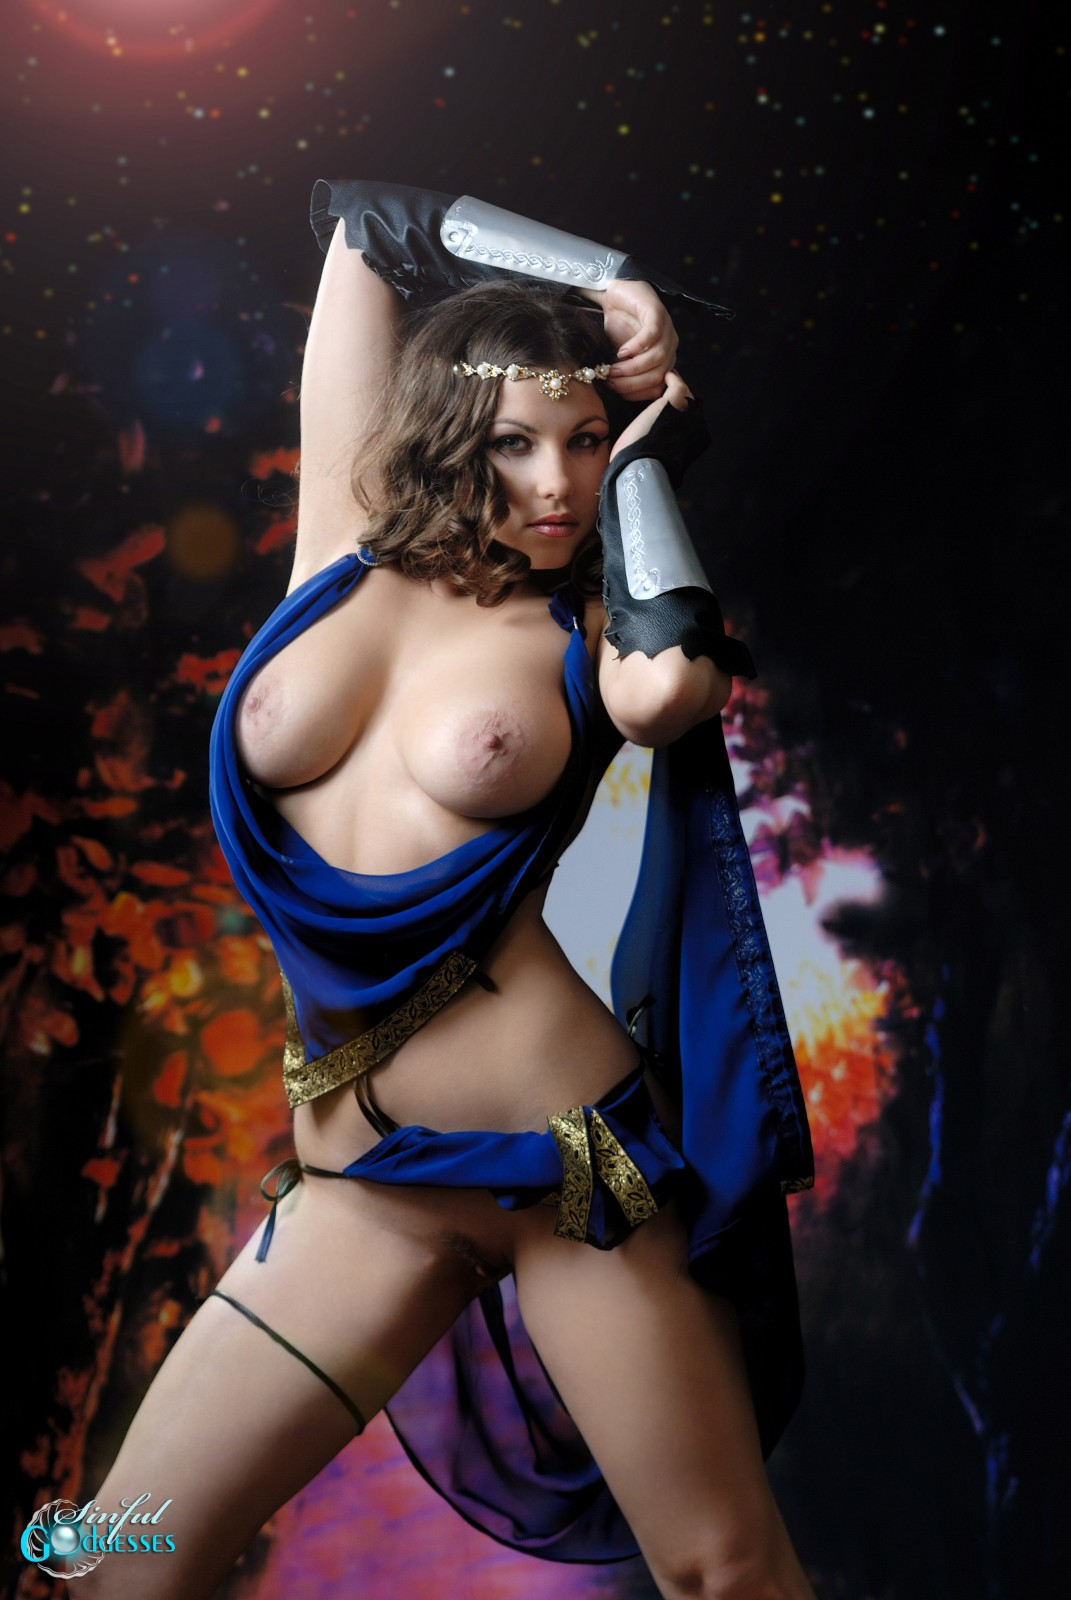 Fantasy sword girl porn erotica video